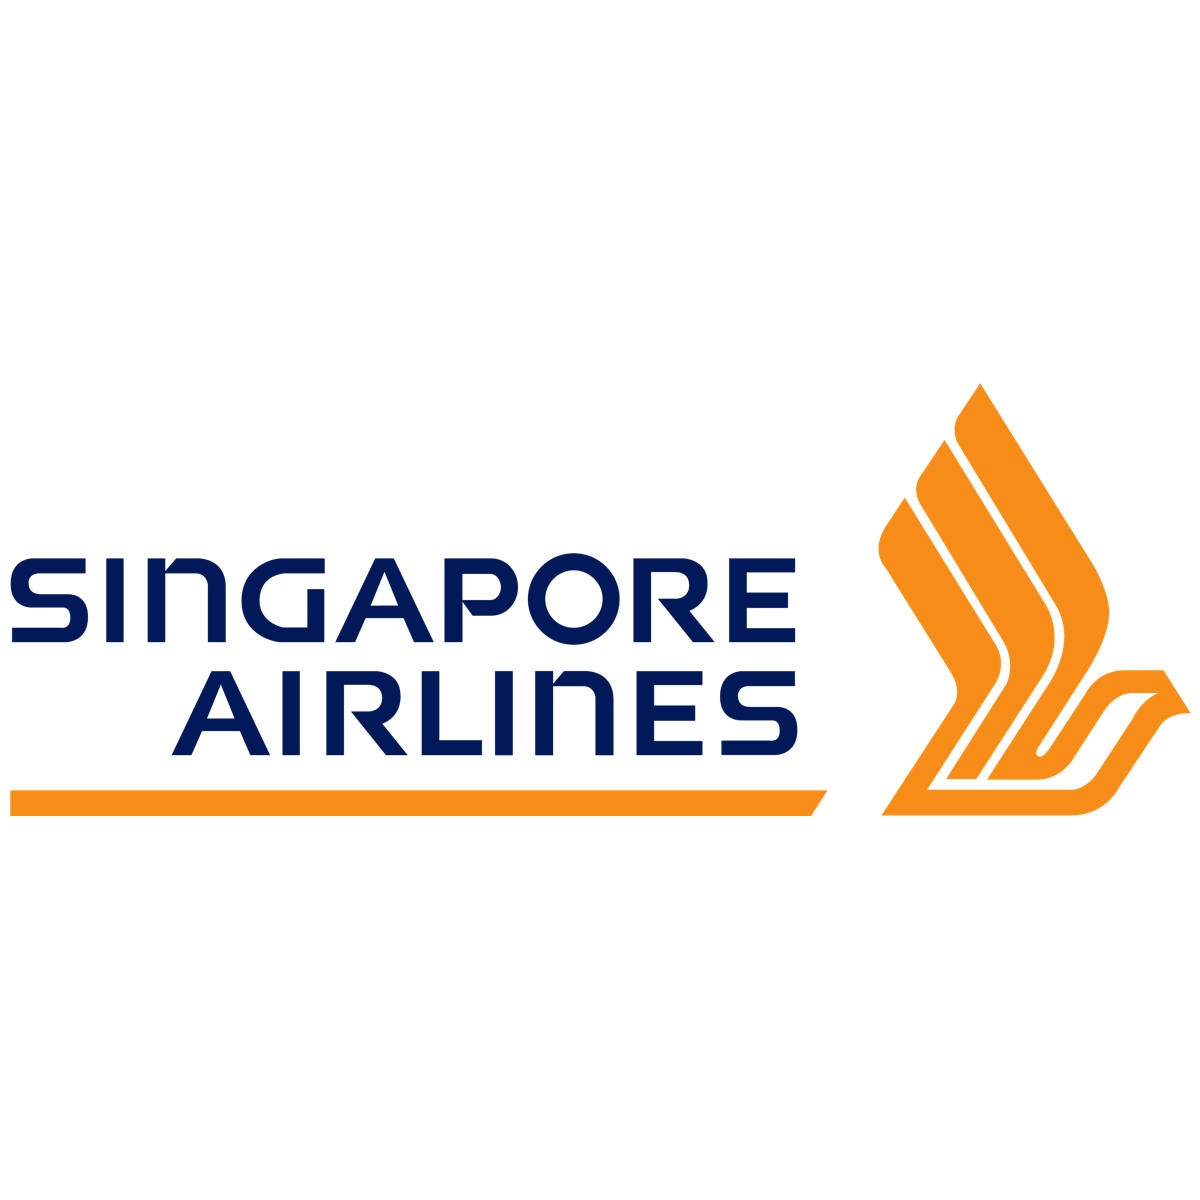 Singapore Airlines - CIMB Research 2018-02-13: Strong 3QFY18 Performance As Expected